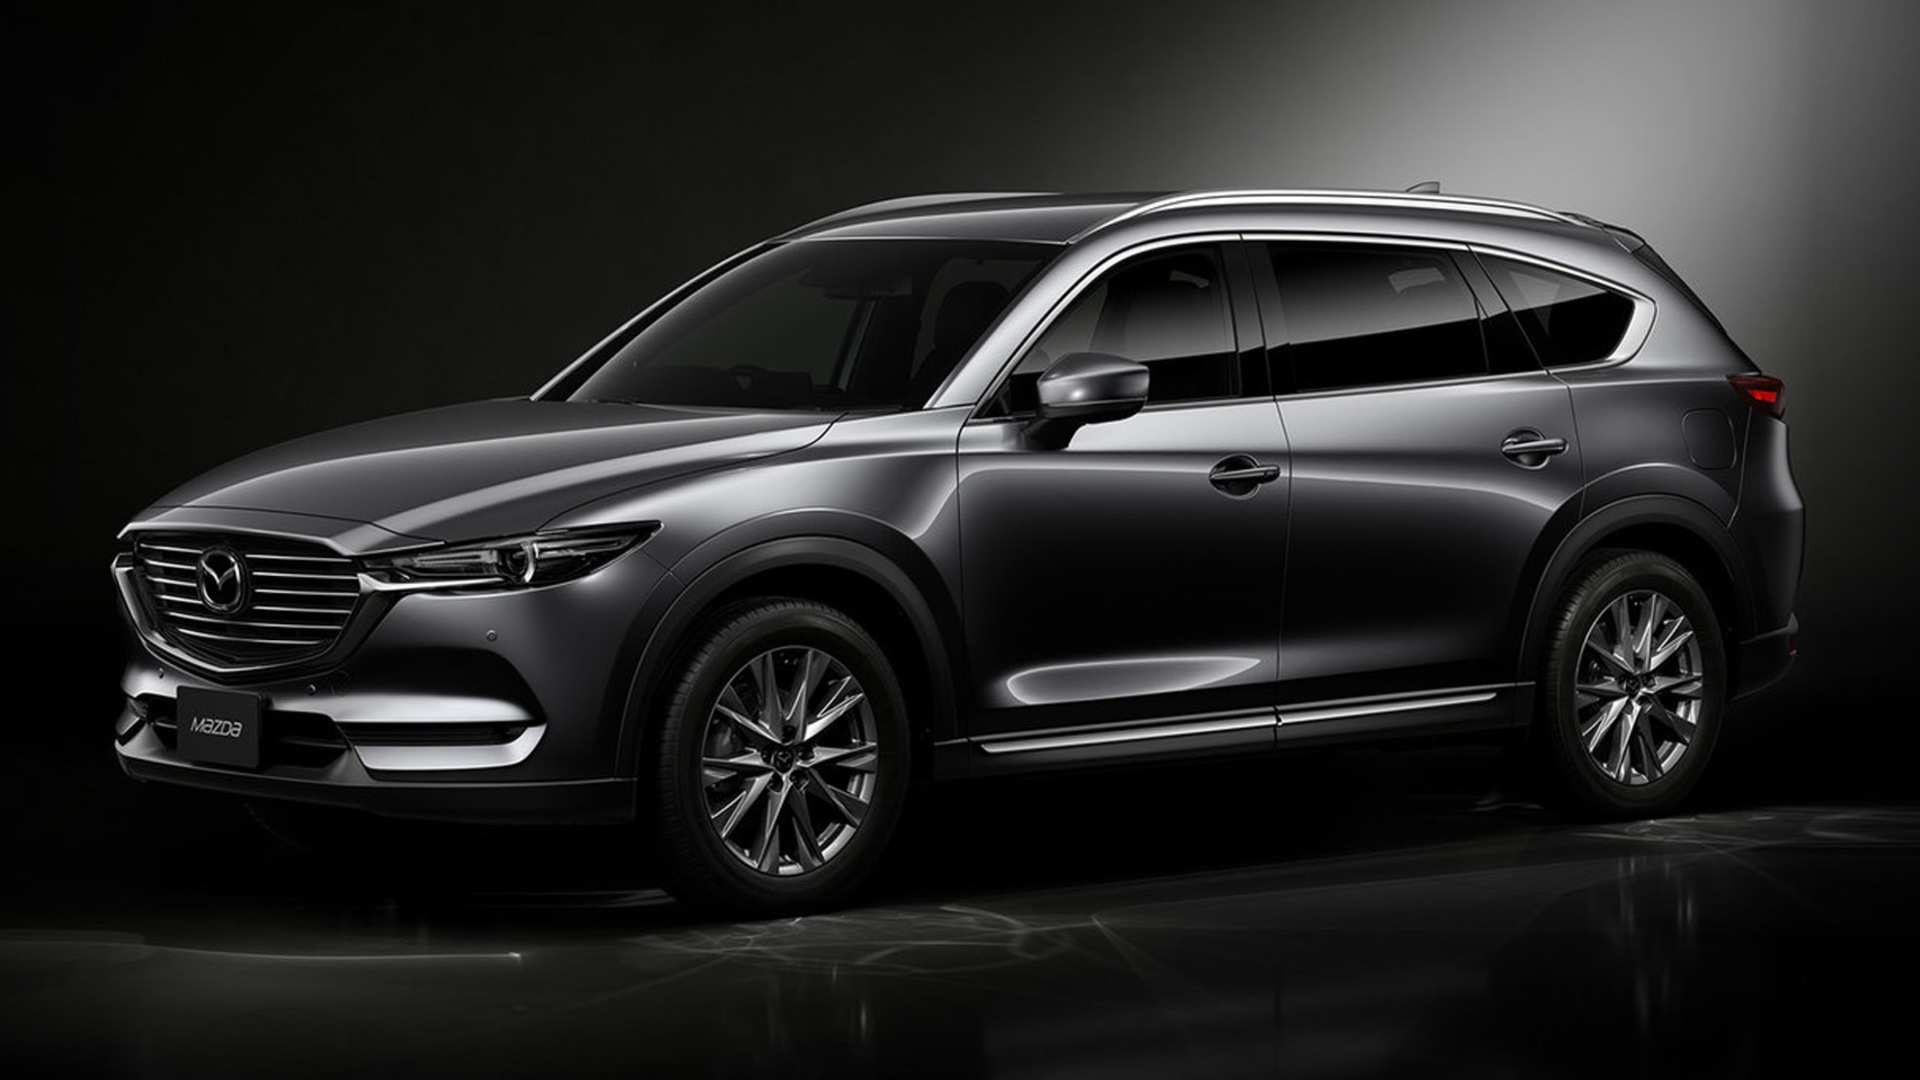 60 Gallery of Mazda New Suv 2020 Research New with Mazda New Suv 2020